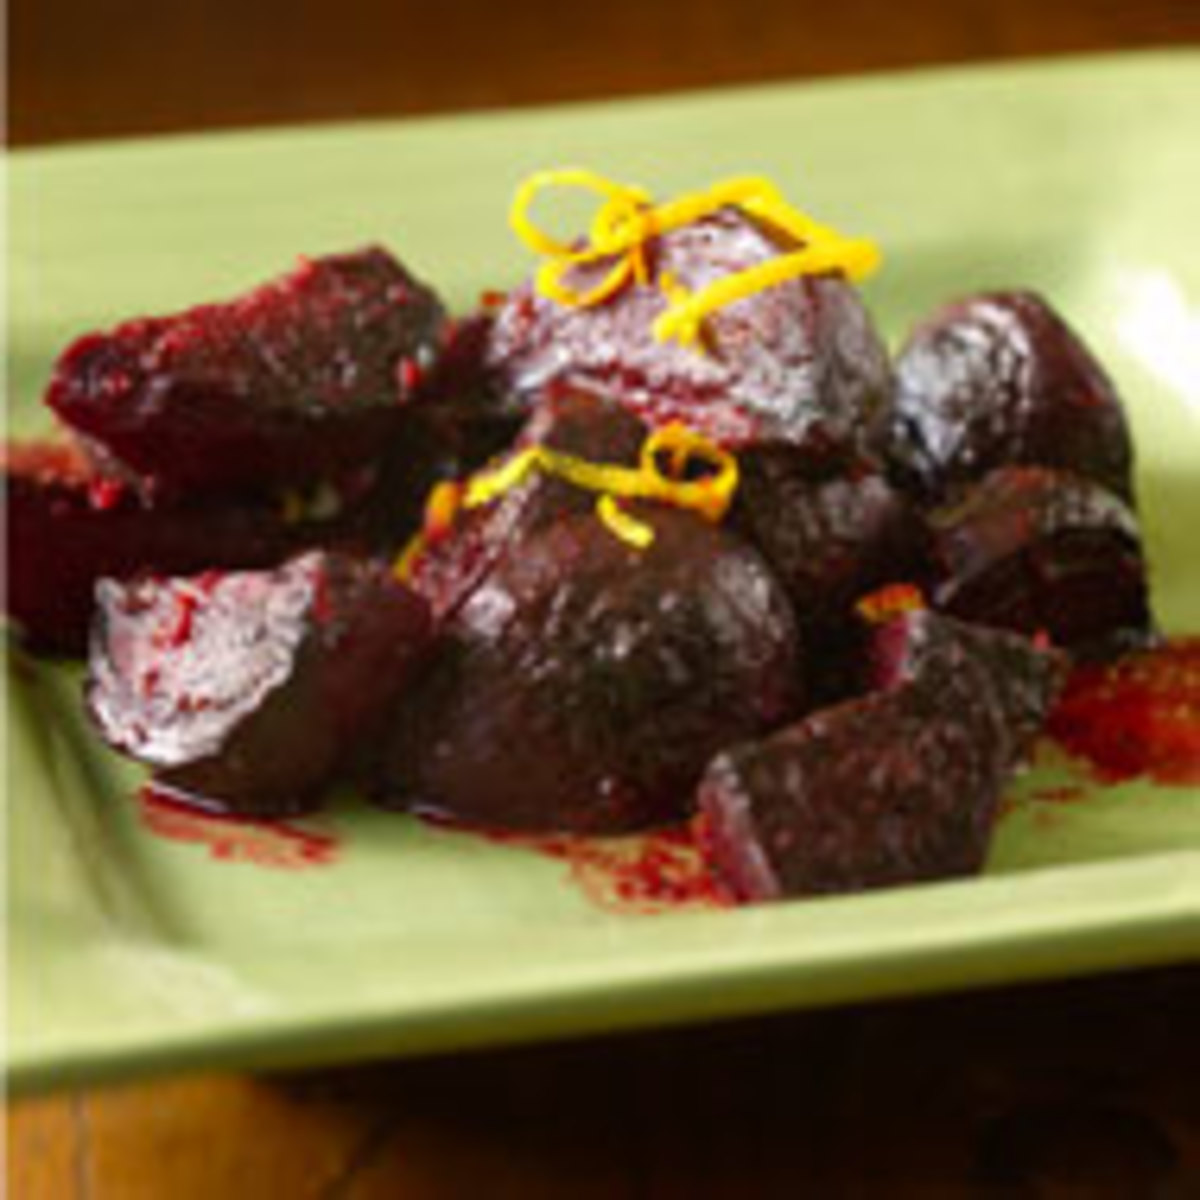 Roasted Beets With Orange Sauce